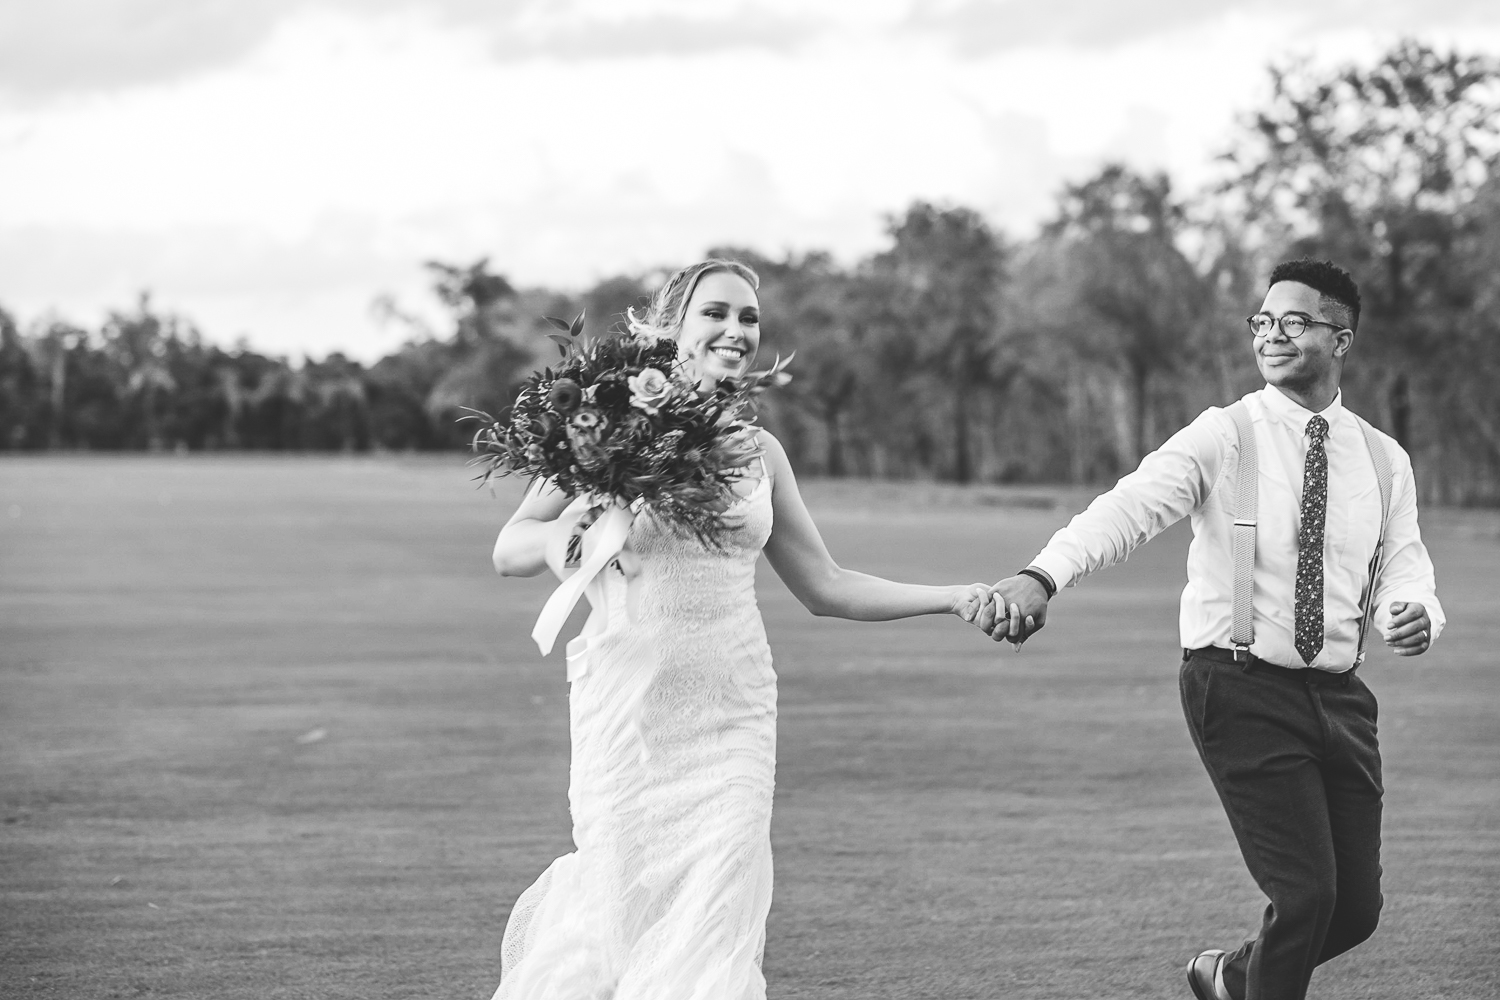 newlyweds running into sunset black and white